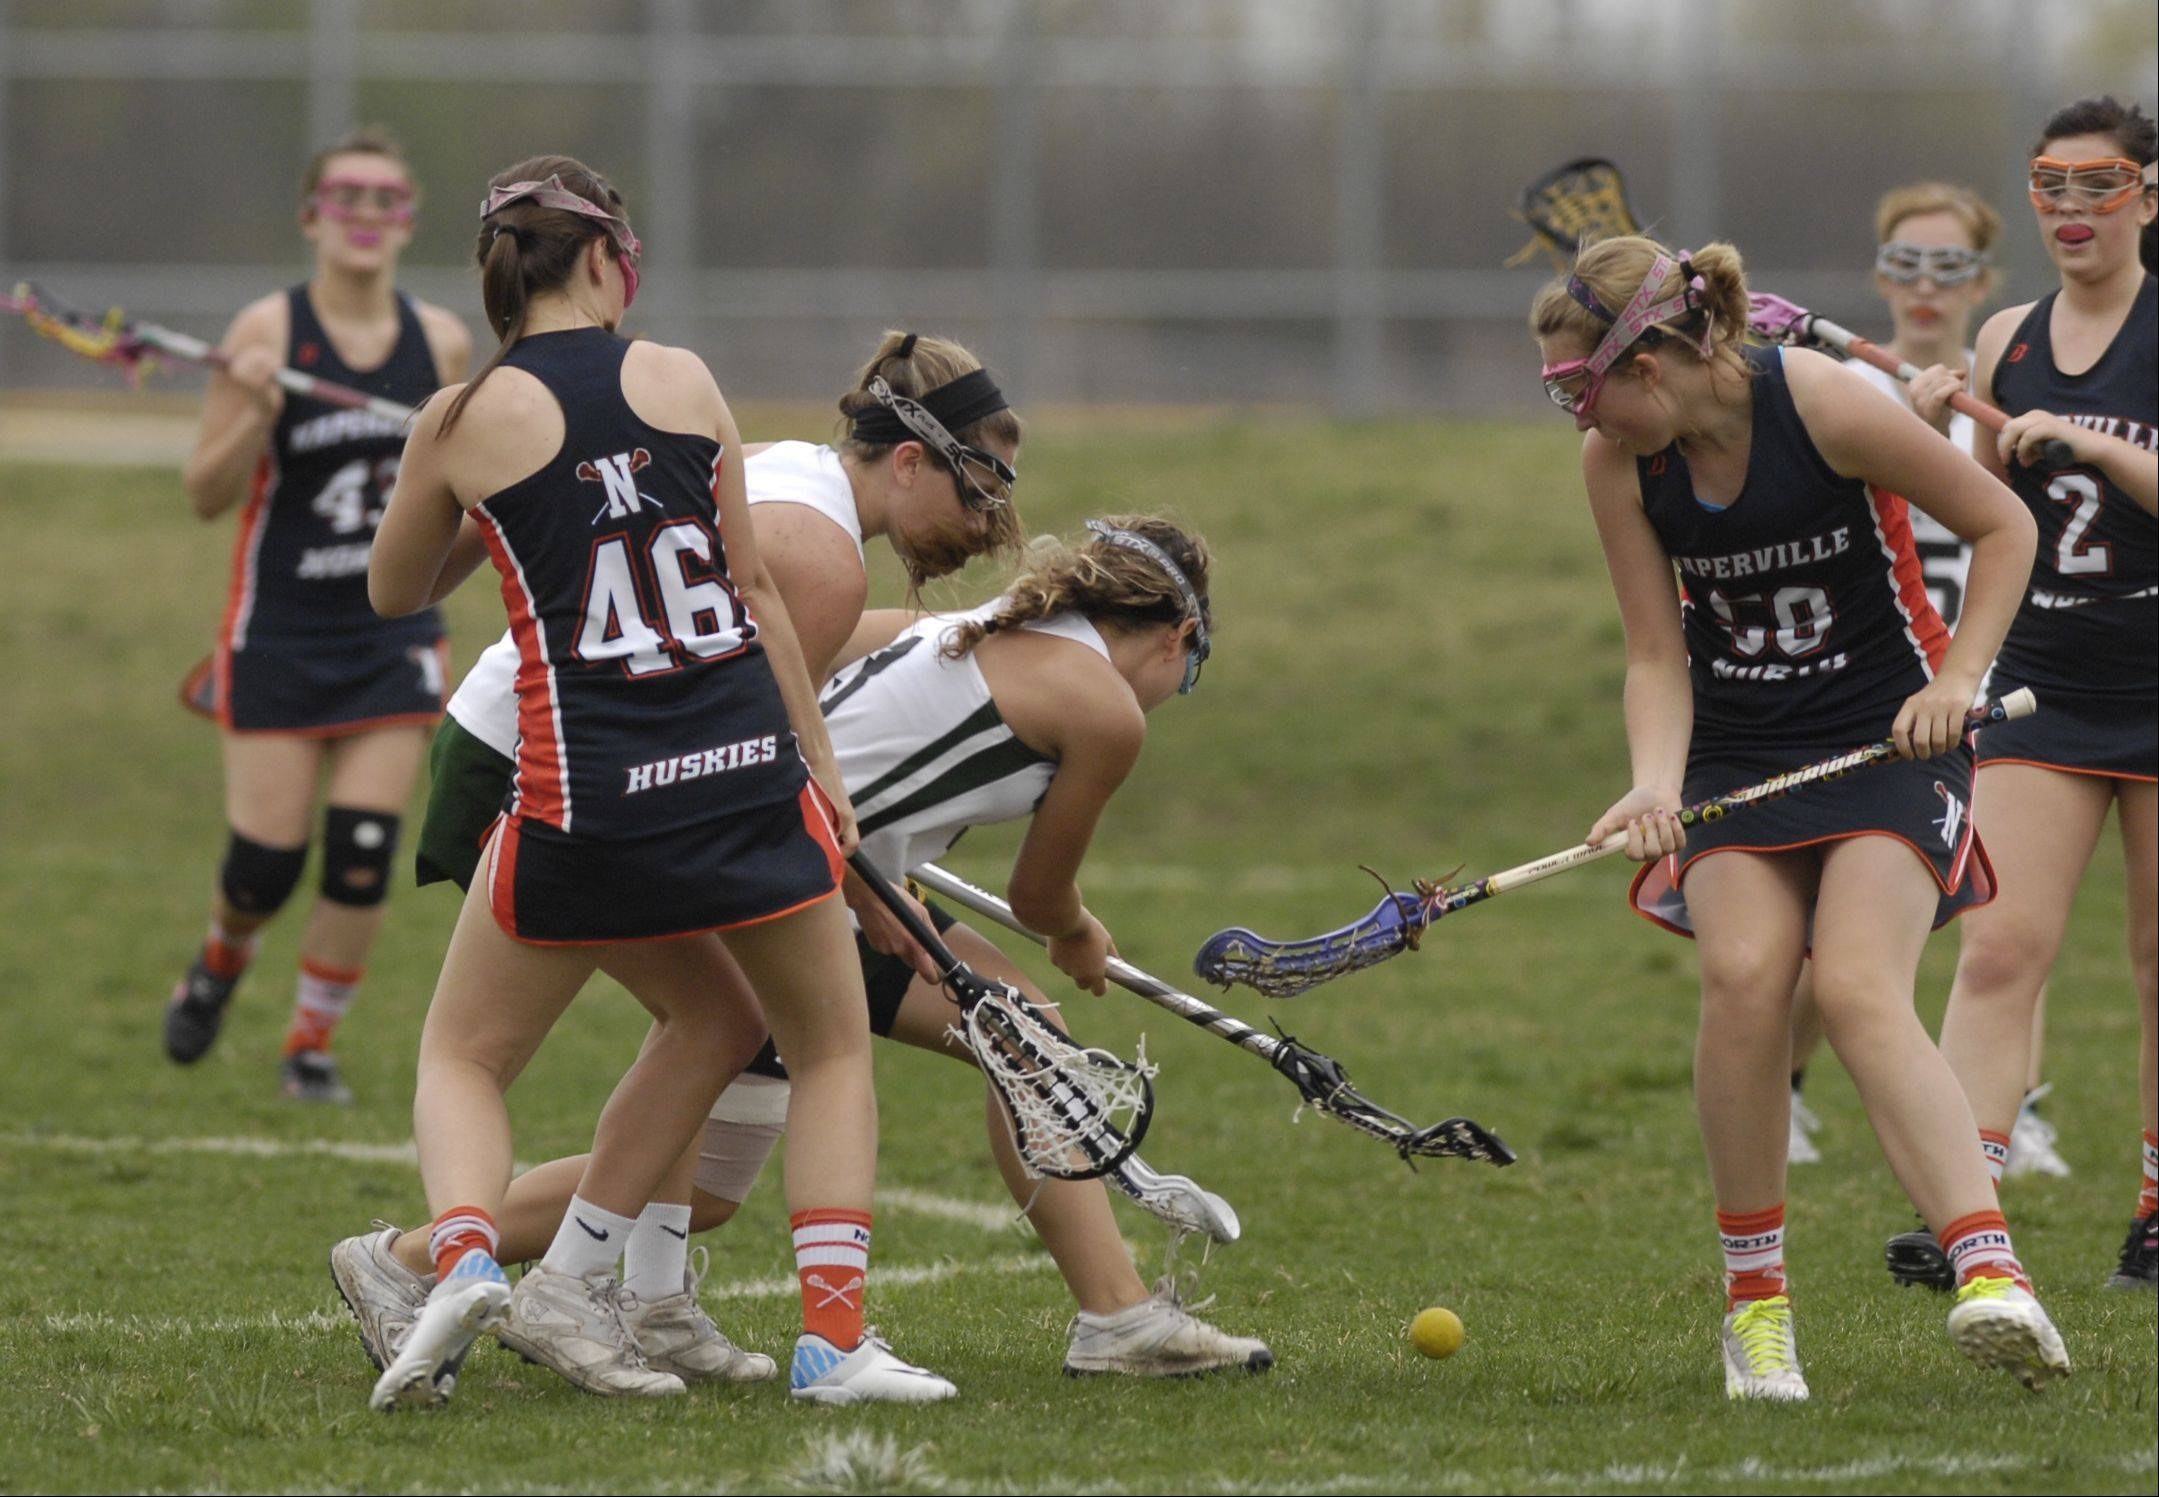 Naperville North girls lacrosse players are asking Naperville Unit District 203 to designate their group as an official sport instead of a club.